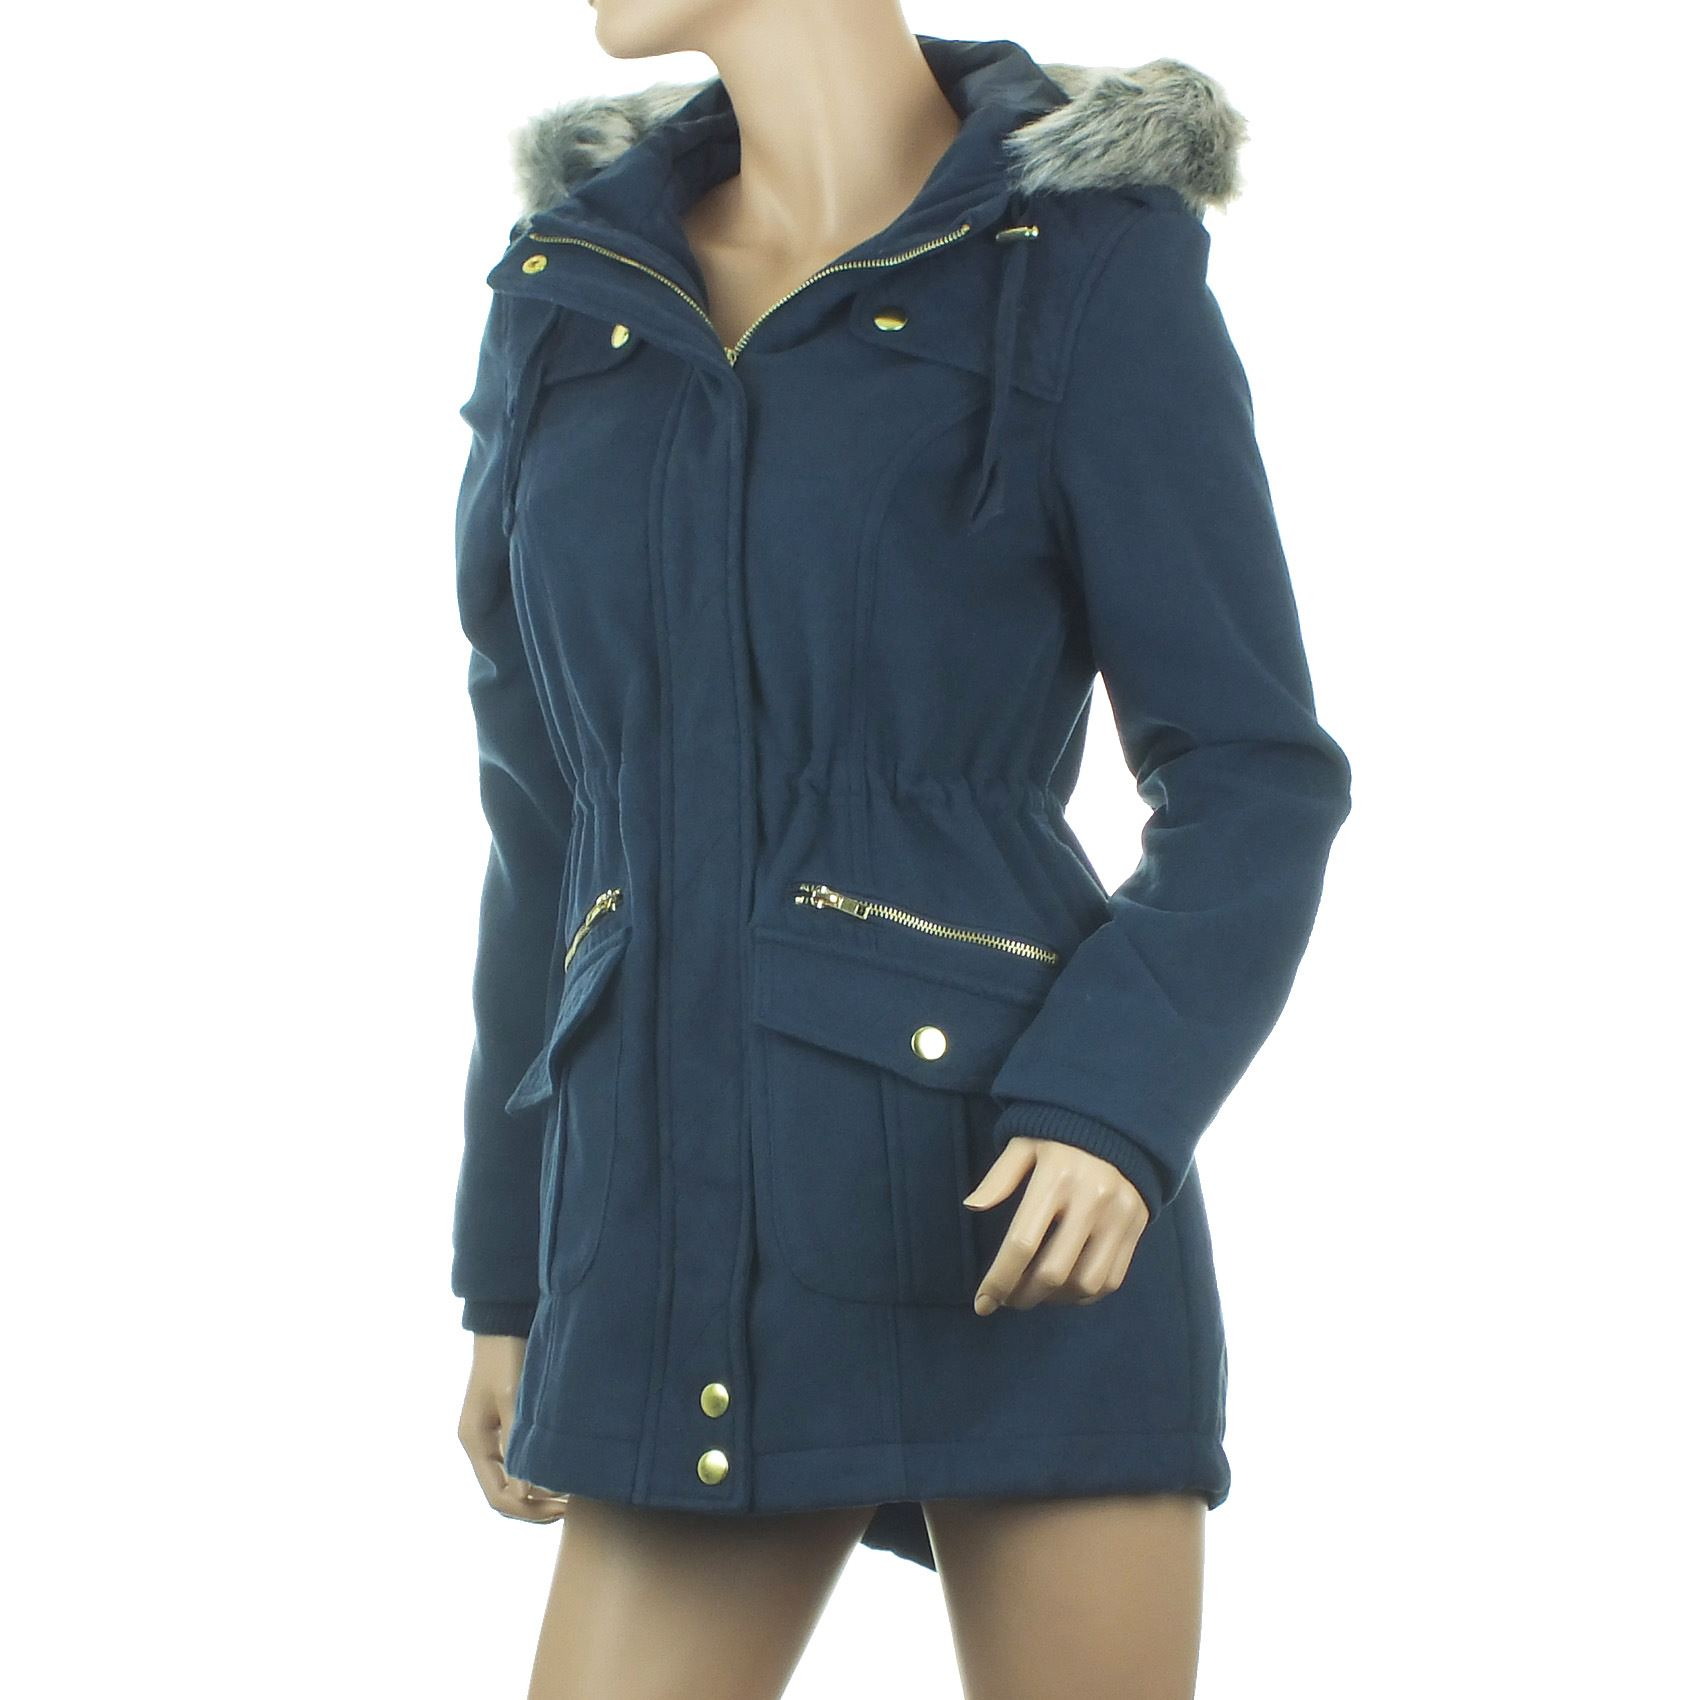 New listing Womens/Ladies Winter Coat Hooded Quilted/Padded Parka Coat Size 16 Brand New YOU MAY BE ABLE TO SEE BITS OF FUR ON THE COAT IN PICTURE. THIS HAS COME FROM THE FUR TRIM ON THE HOOD Women's black parka coat Size 16 Quilted/Padded.